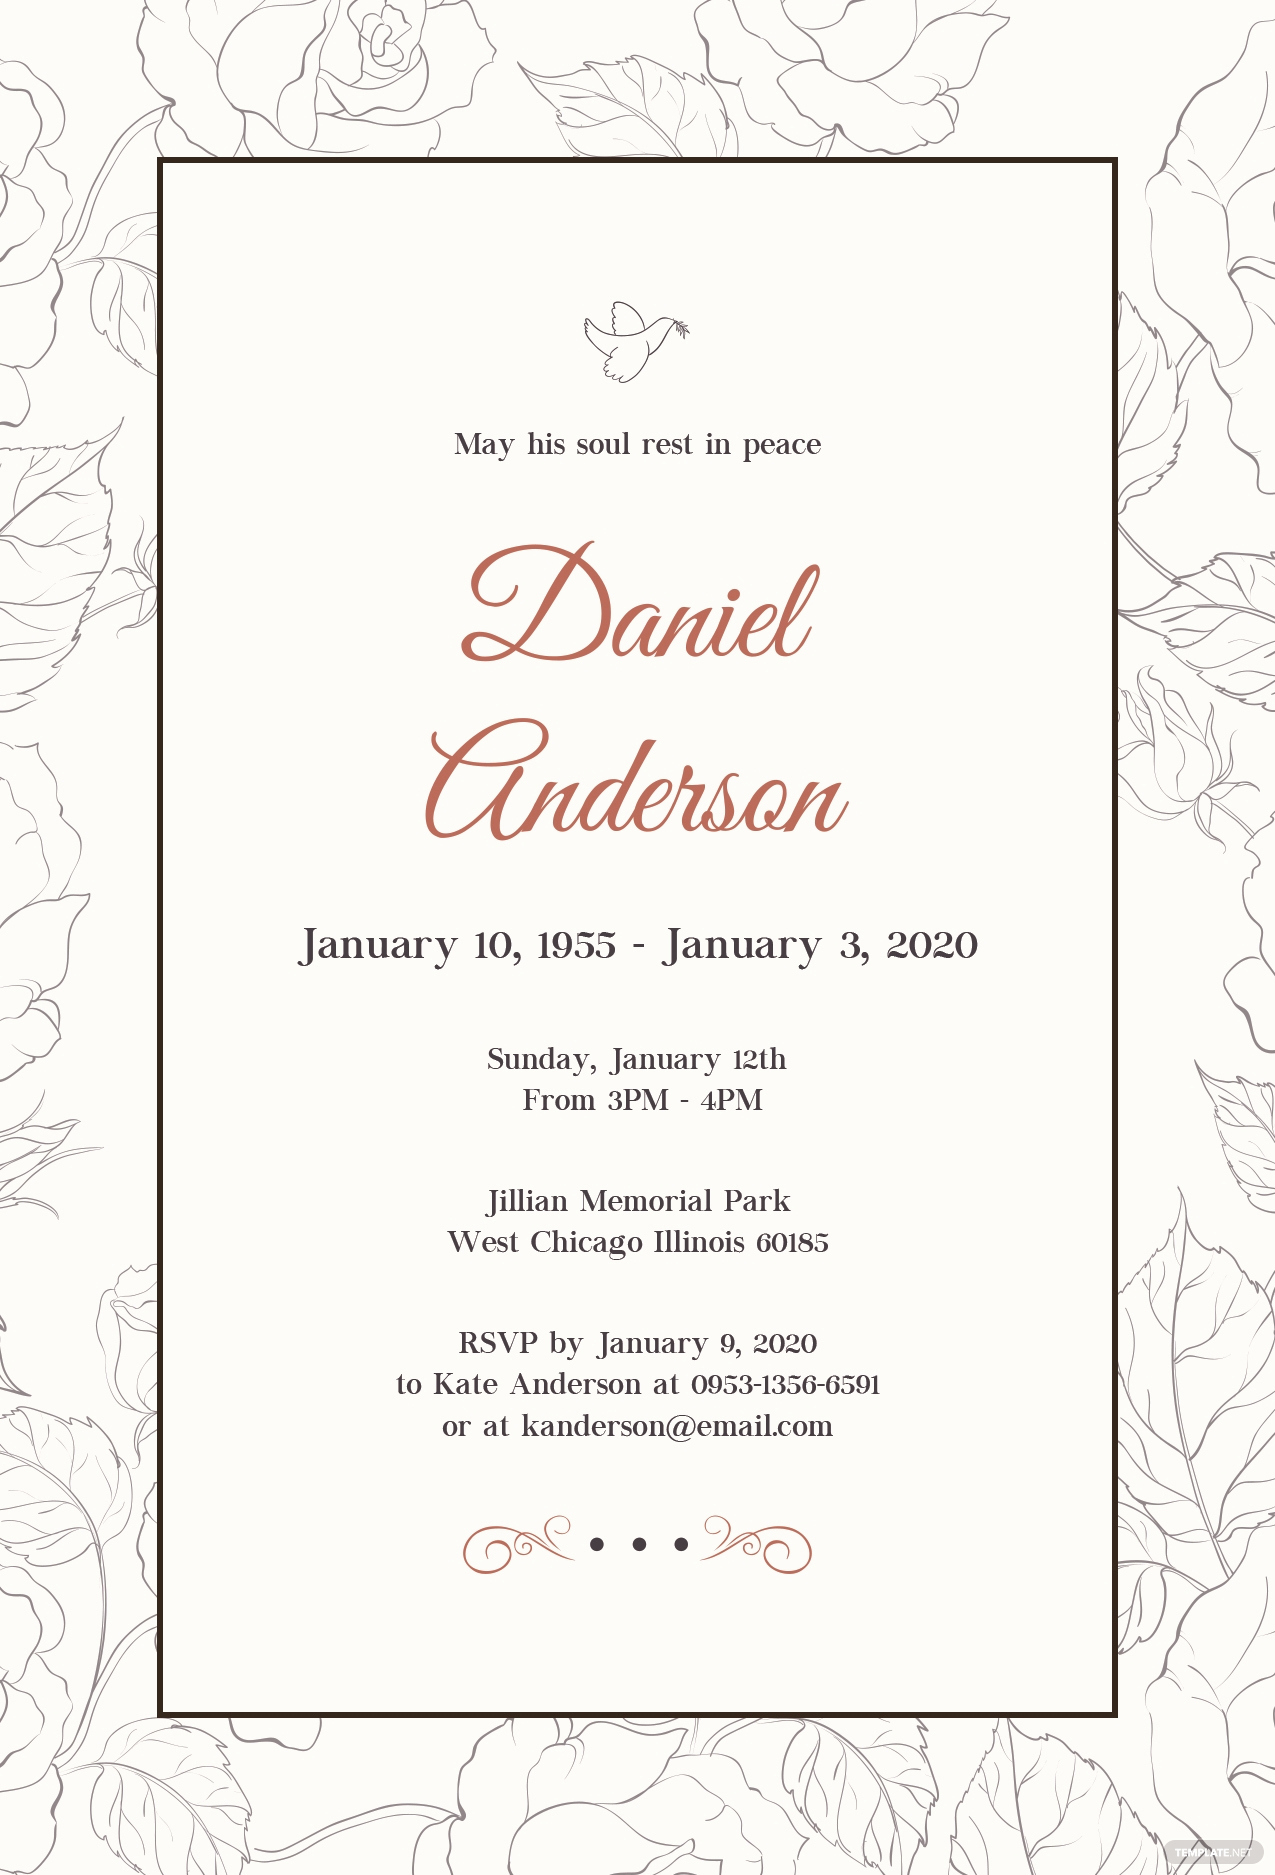 Memorial Service Announcement Template Free New Free Simple Funeral Invitation Template In Psd Ms Word